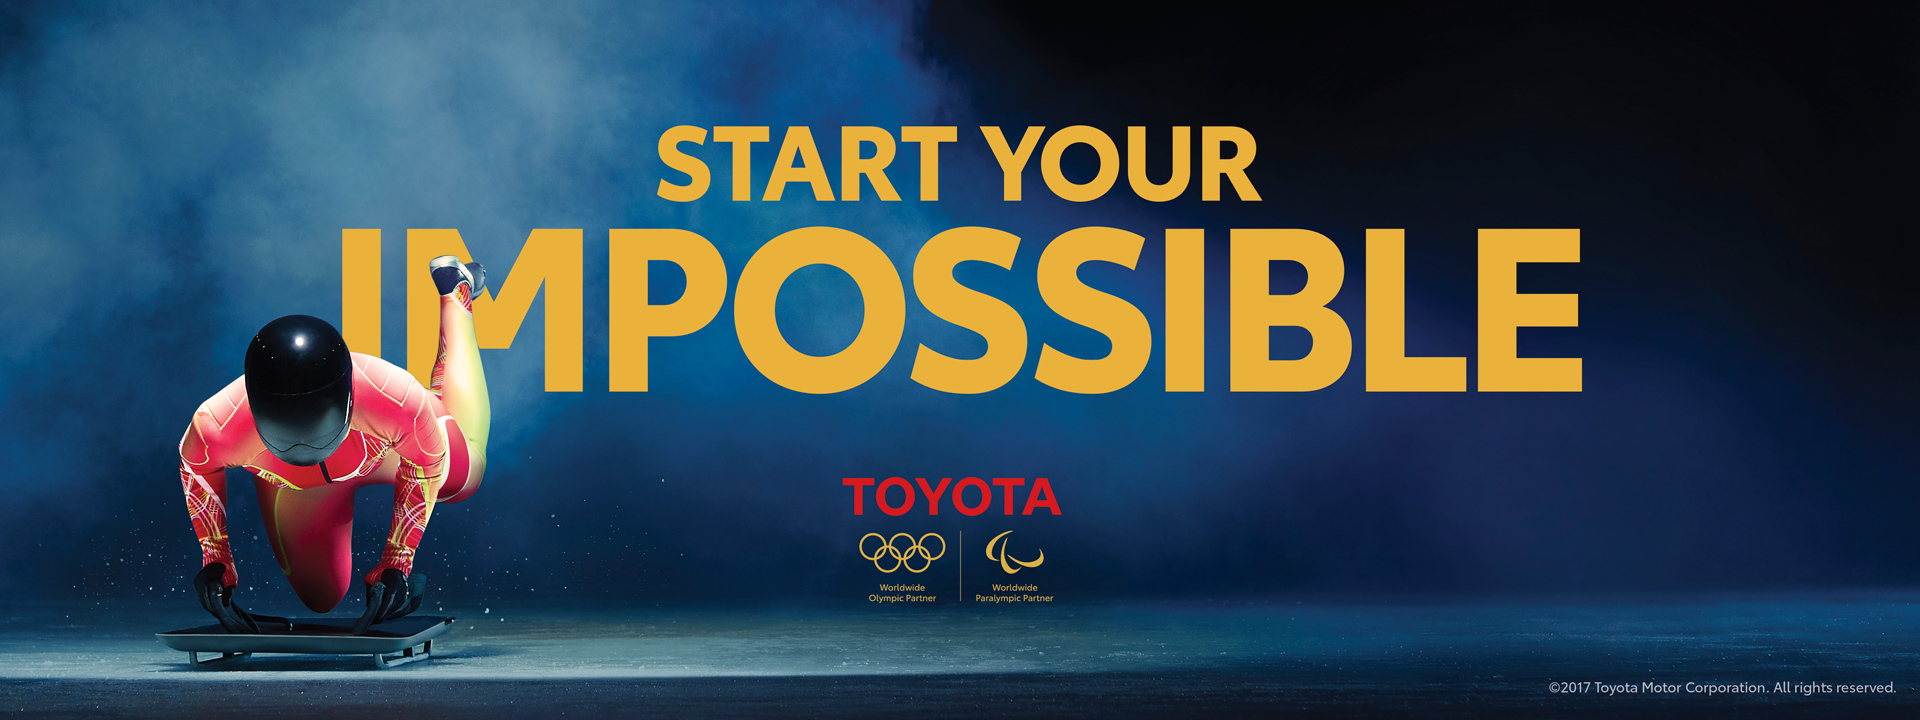 "toyota sets a goal of mobility for all in global ""start your"